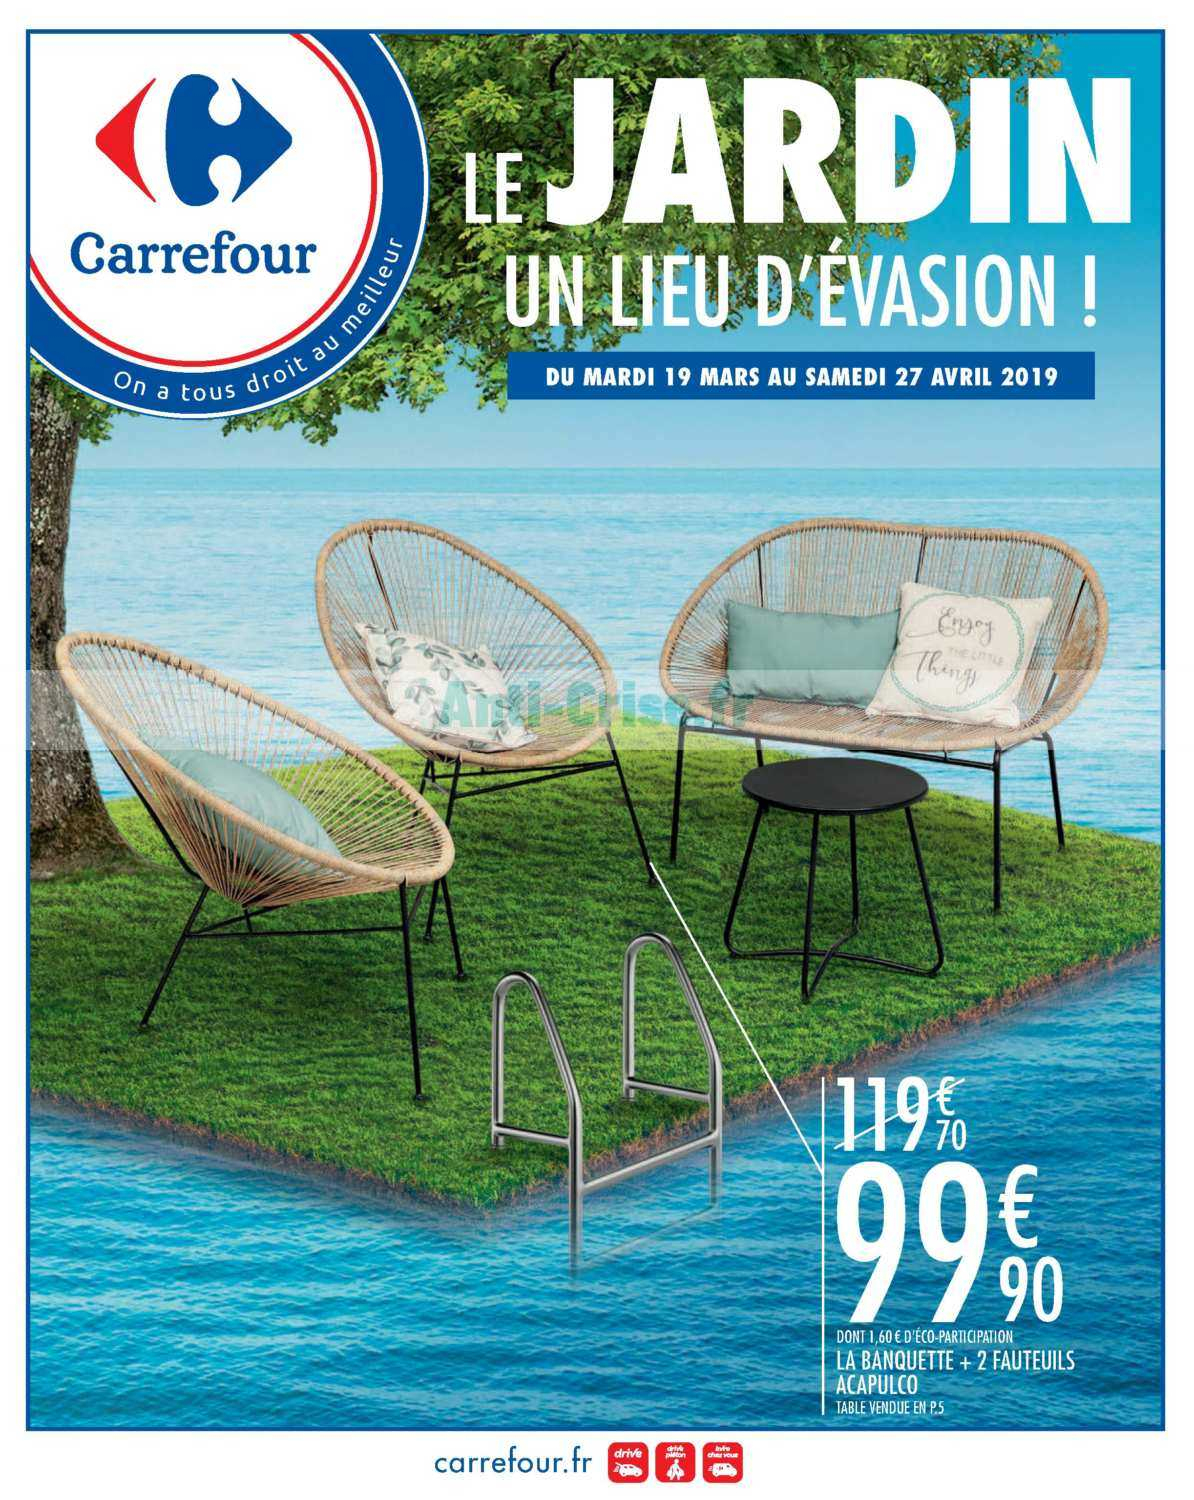 Catalogue Carrefour Du 19 Mars Au 27 Avril 2019 (Jardin ... à Carrefour Salon De Jardin